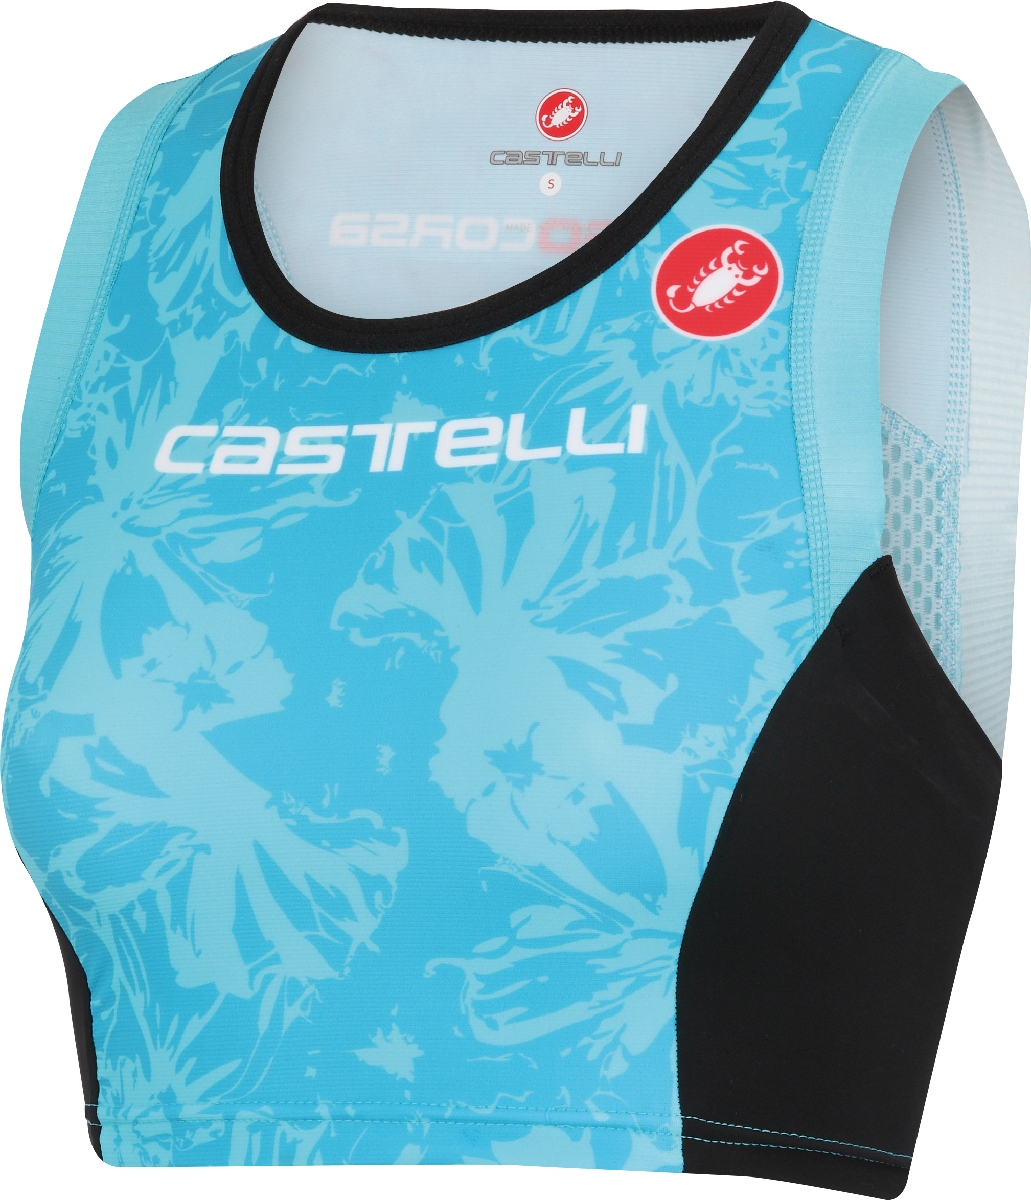 Castelli Free Short Triathlon Top Women's Size L PastelBlue U.S.A. & Canada